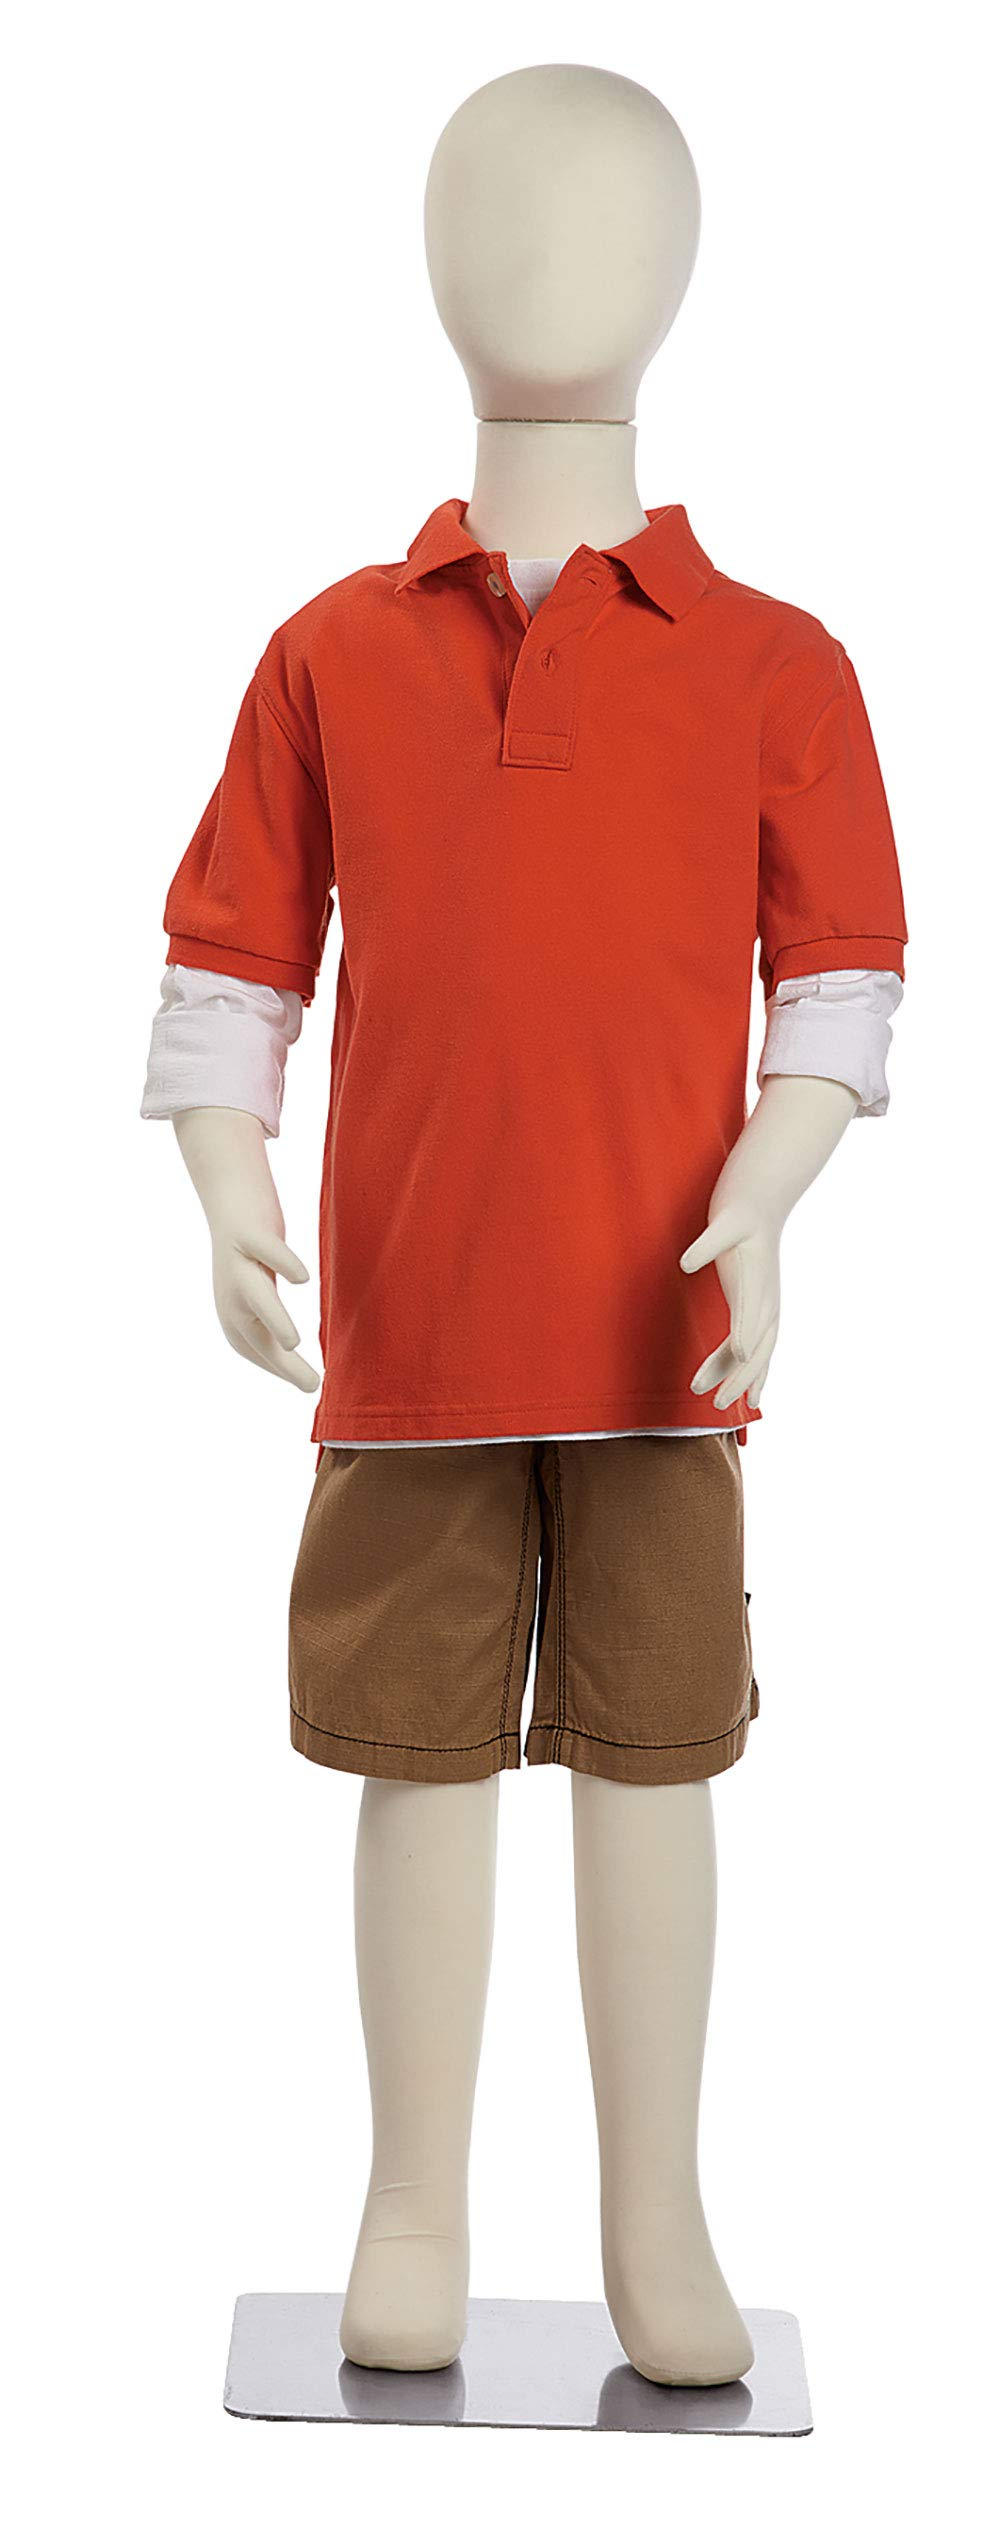 Large Youth Flexible Mannequin (7 Year) - 46'' with Head 40'' Without Head